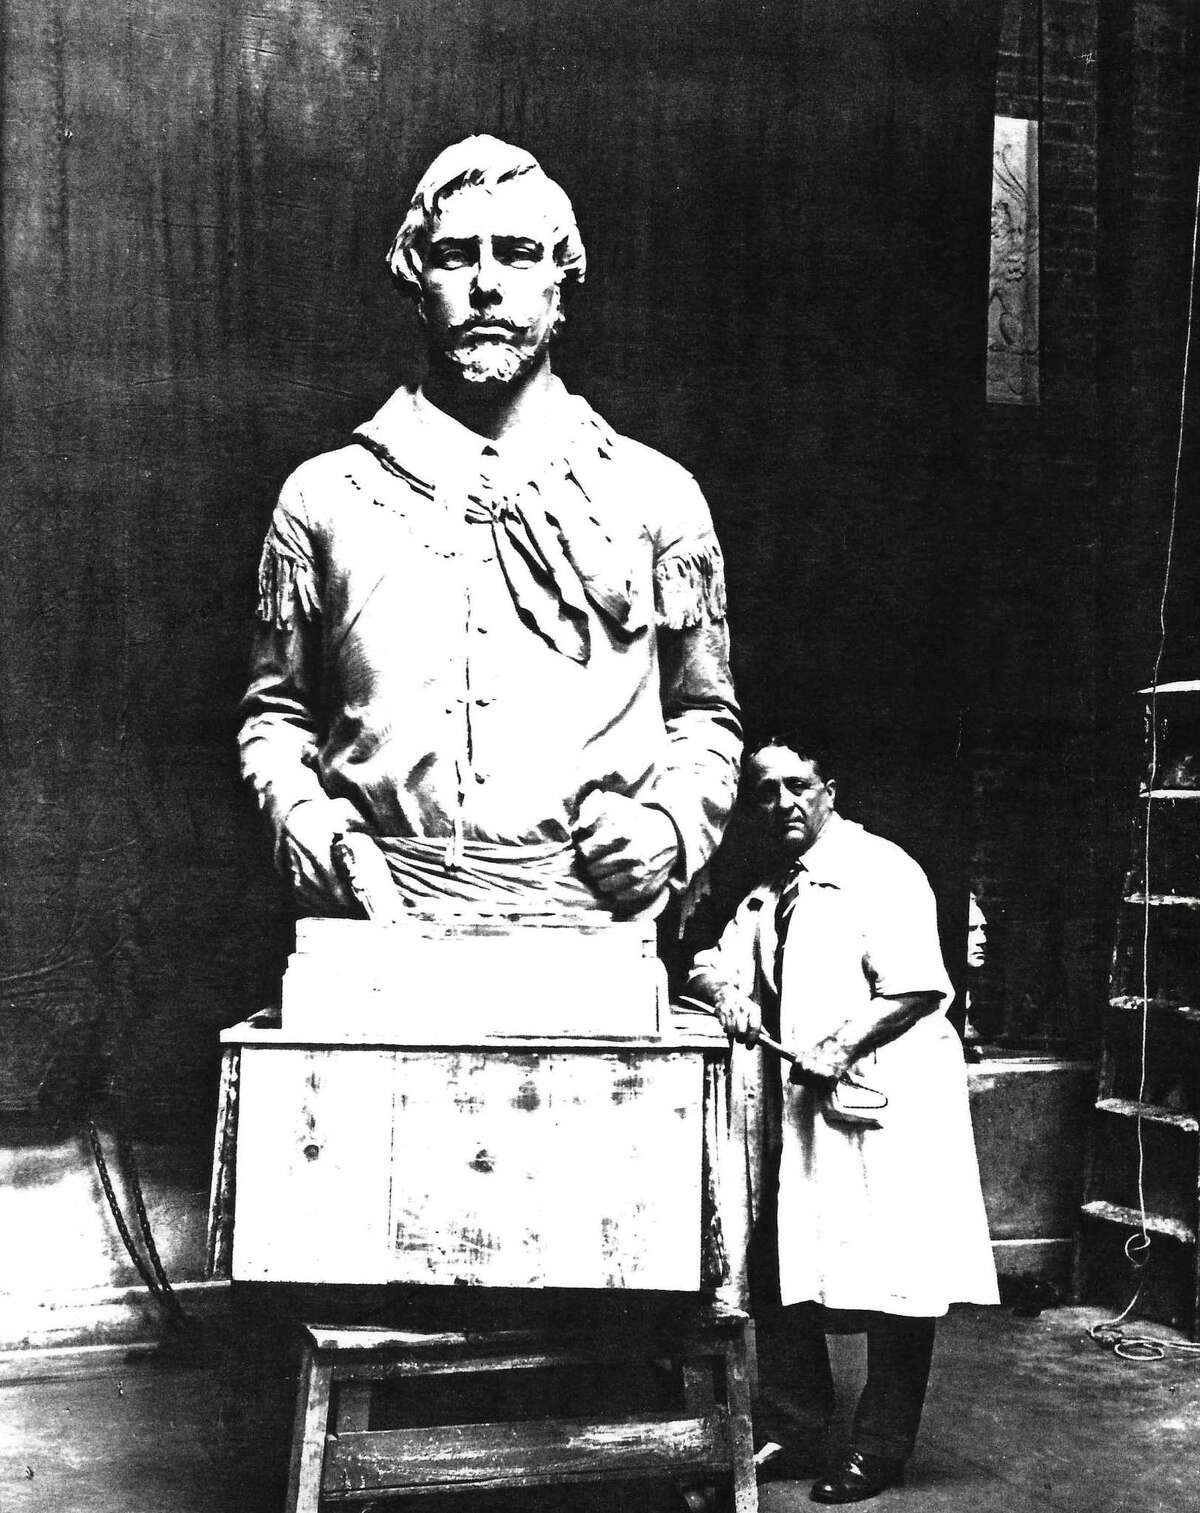 Alamo Cenotaph sculptor Pompeo Coppini poses with his bronze bust of fellow Italian immigrant Prospero Bernardi, who fought in the Battle of San Jacinto. The bust was unveiled Oct. 12, 1936, at the Texas Centennial Exposition and remains at Fair Park in Dallas.